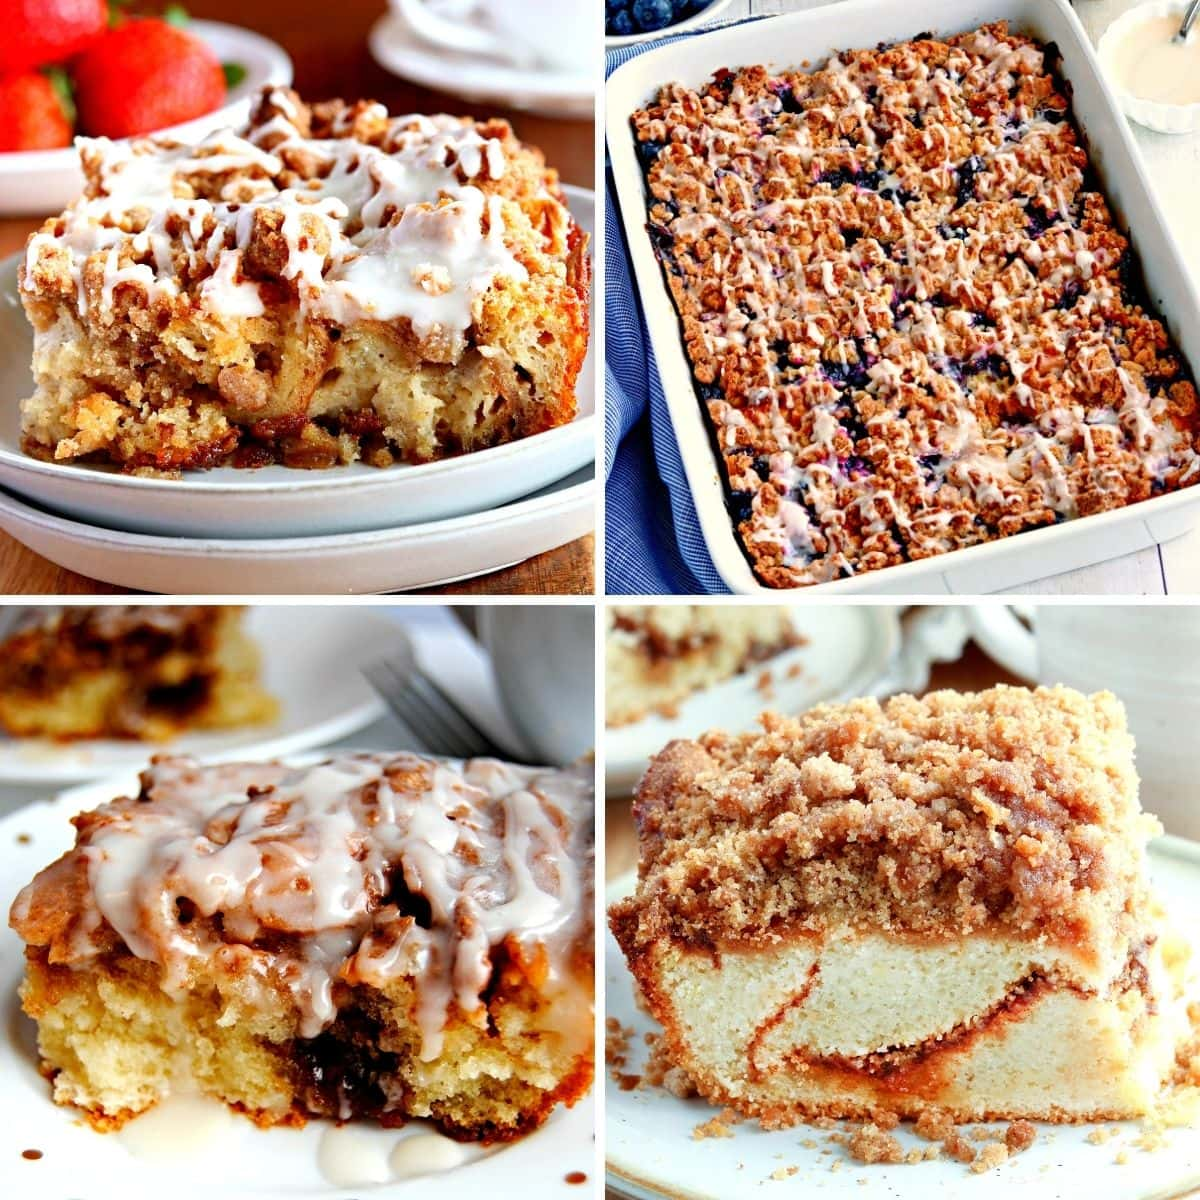 gluten-free breakfast casseroles and breakfast cakes recipes photo collage